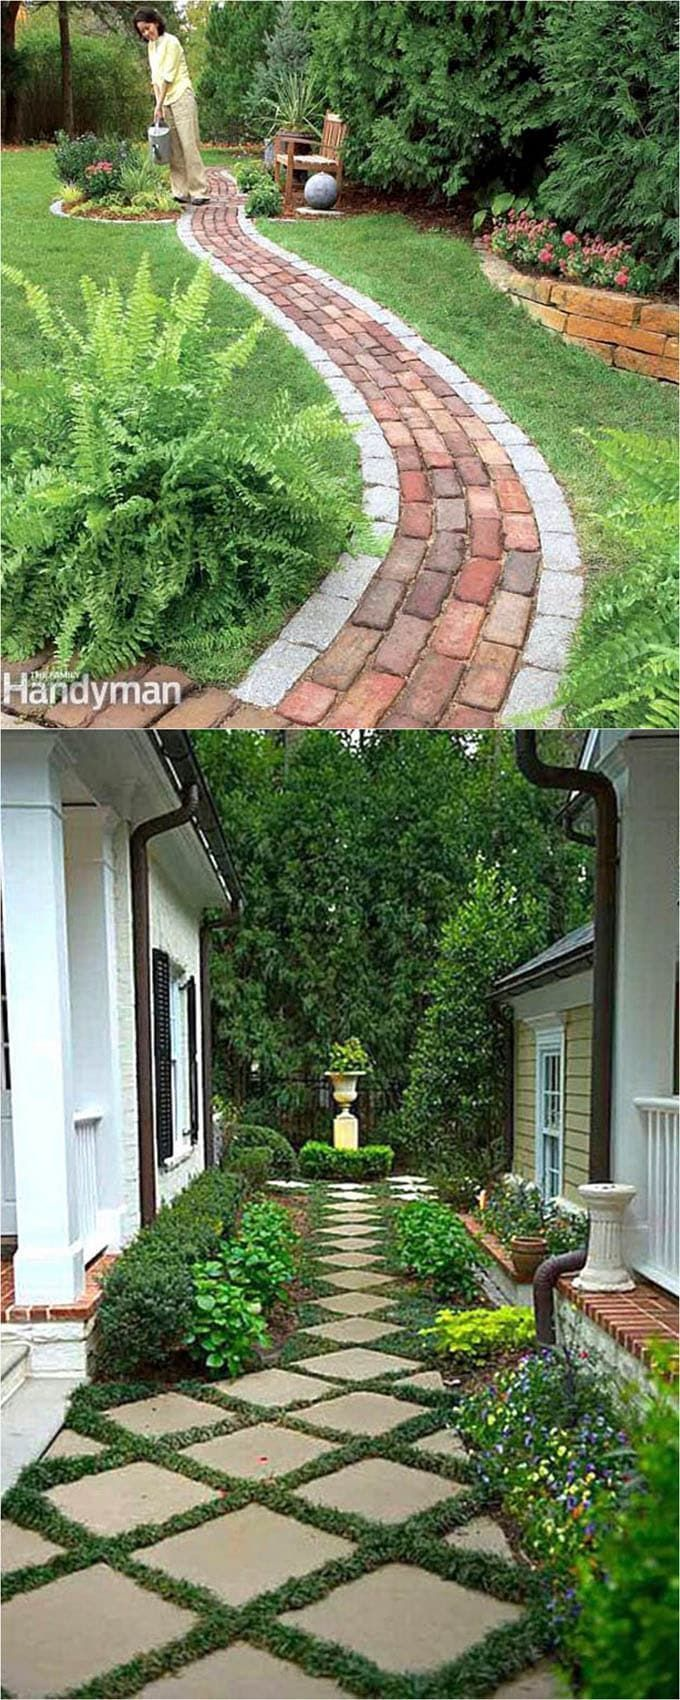 25 Most Beautiful DIY Garden Path Ideas | Pinterest | Garden paths ...